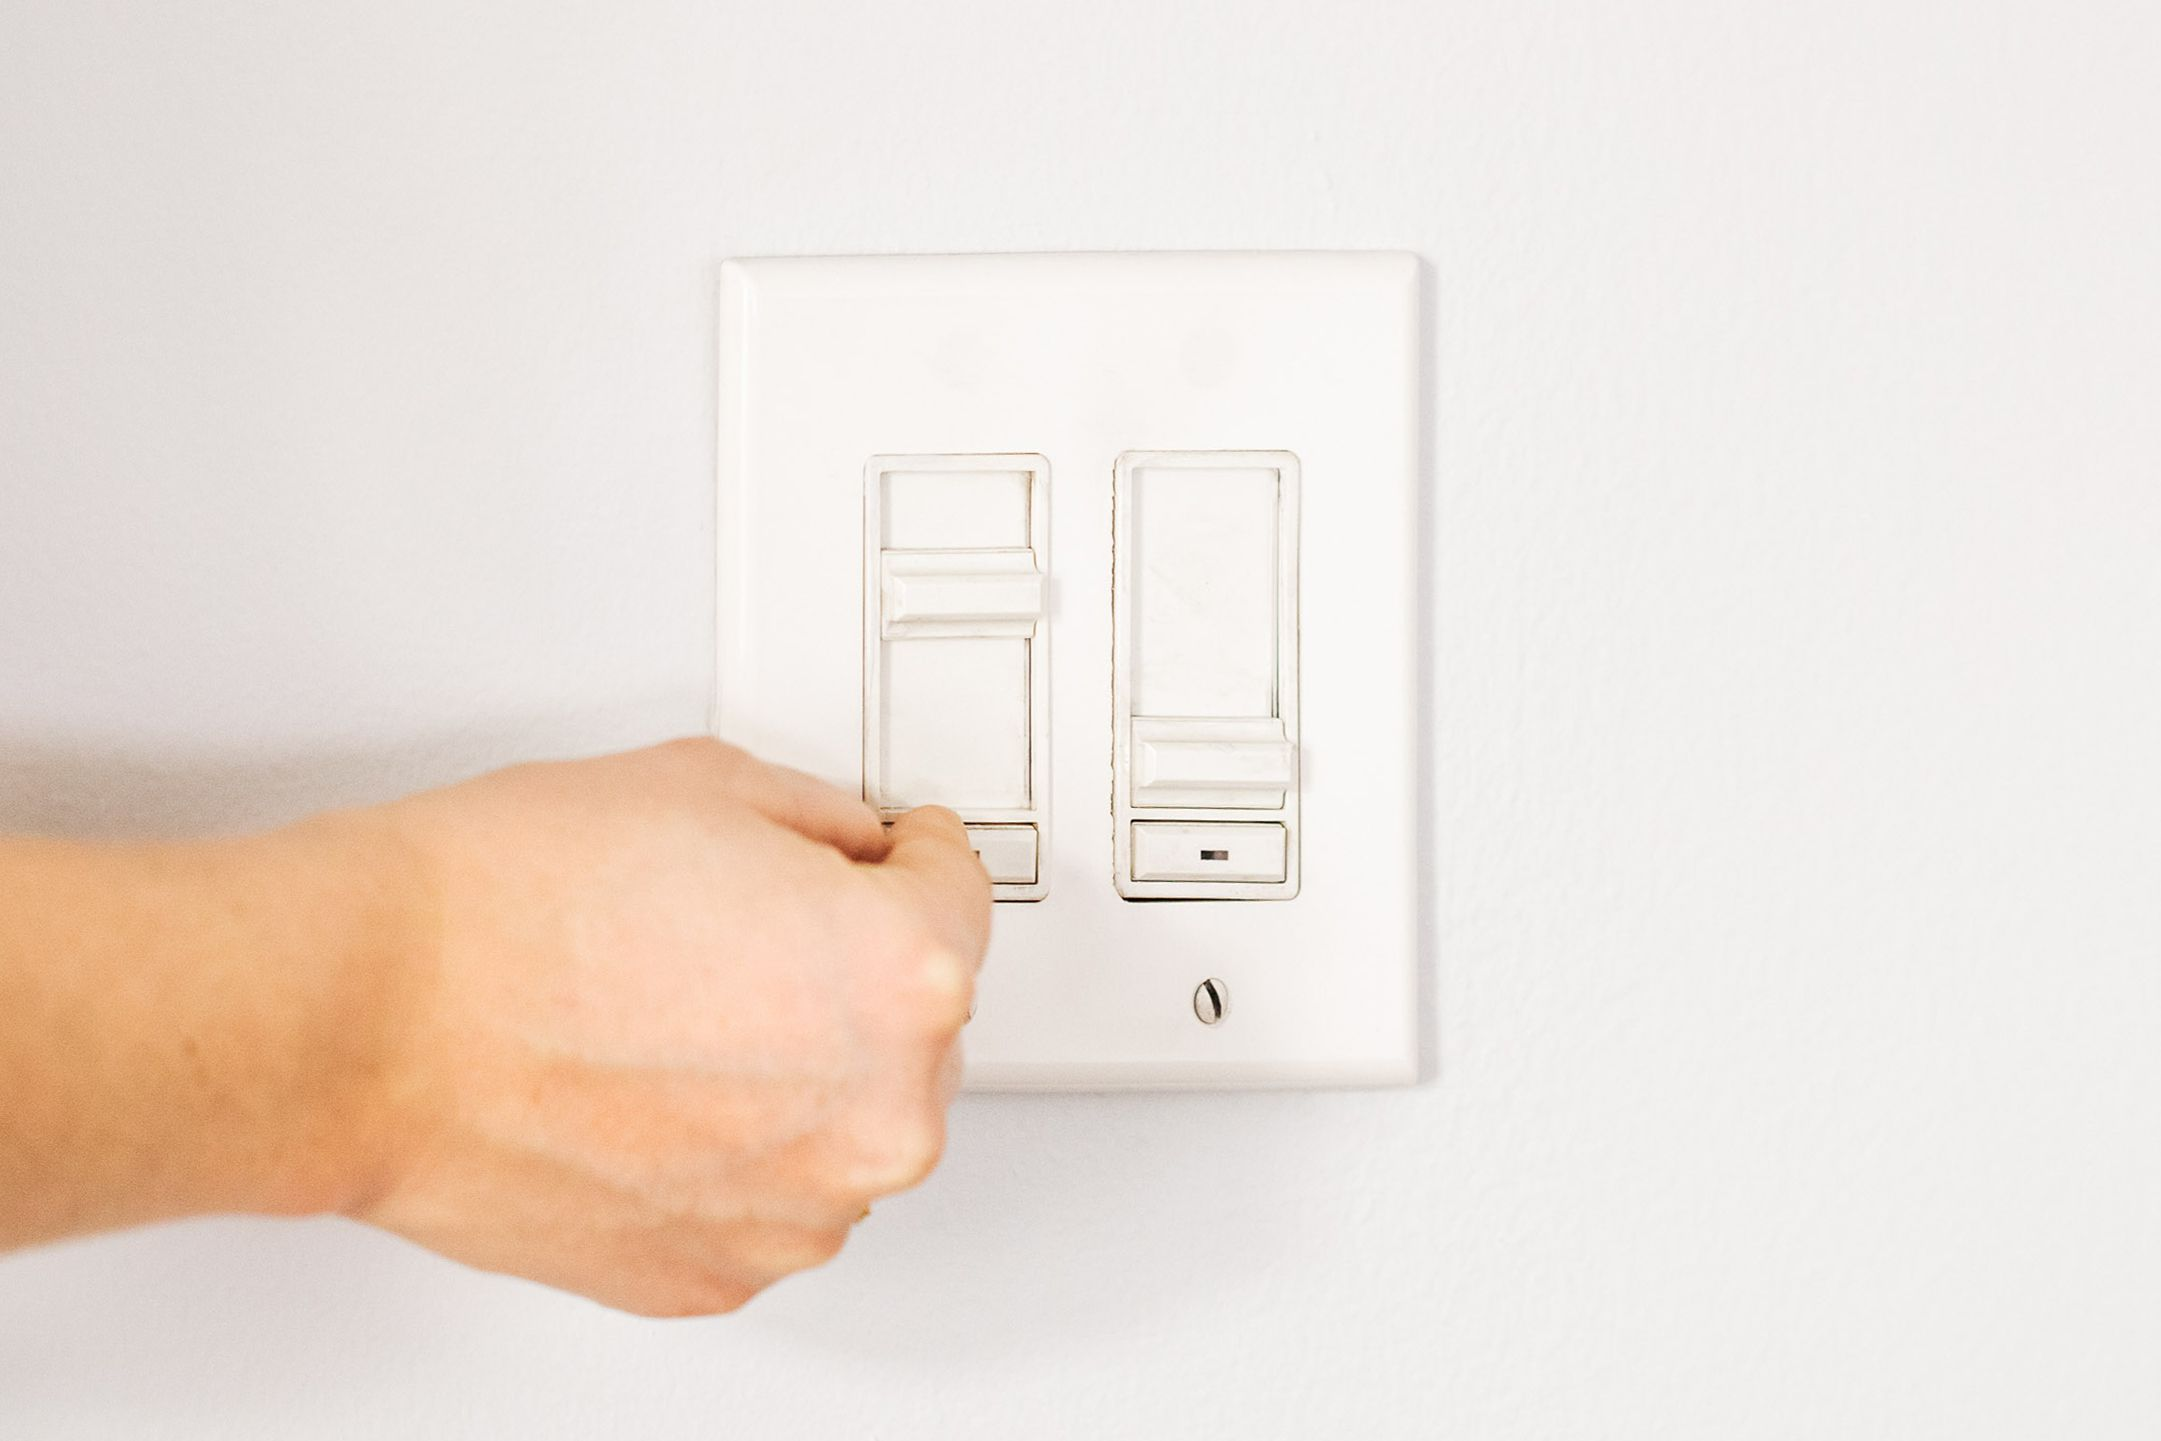 How to Fix a Hot or Buzzing Dimmer Switch